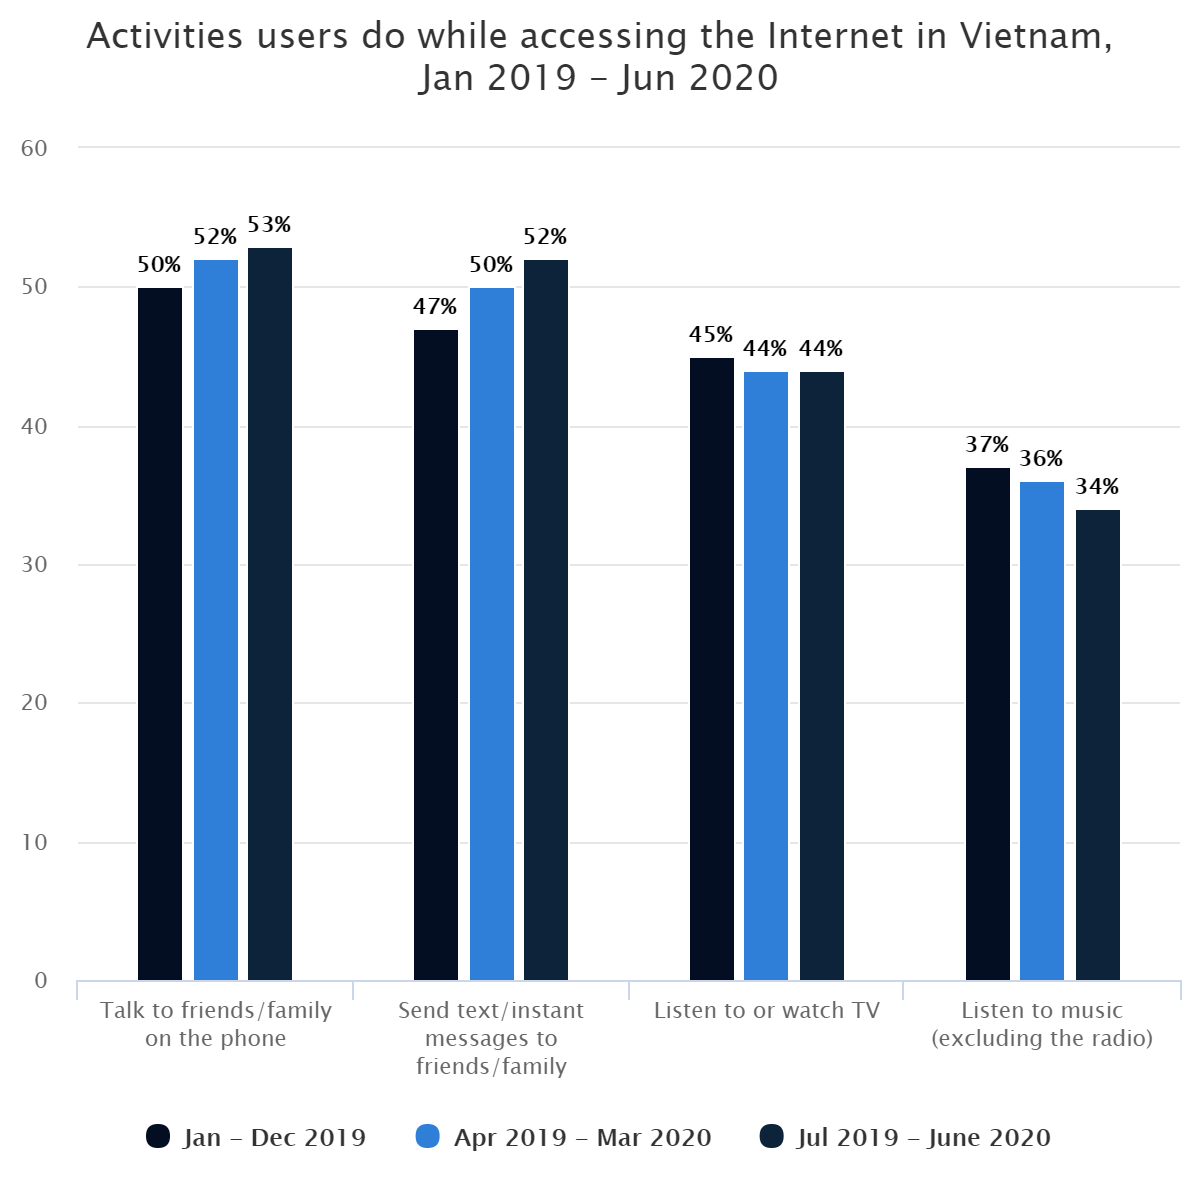 Activities users do while accessing the Internet in Vietnam, Jan 2019 – Jun 2020